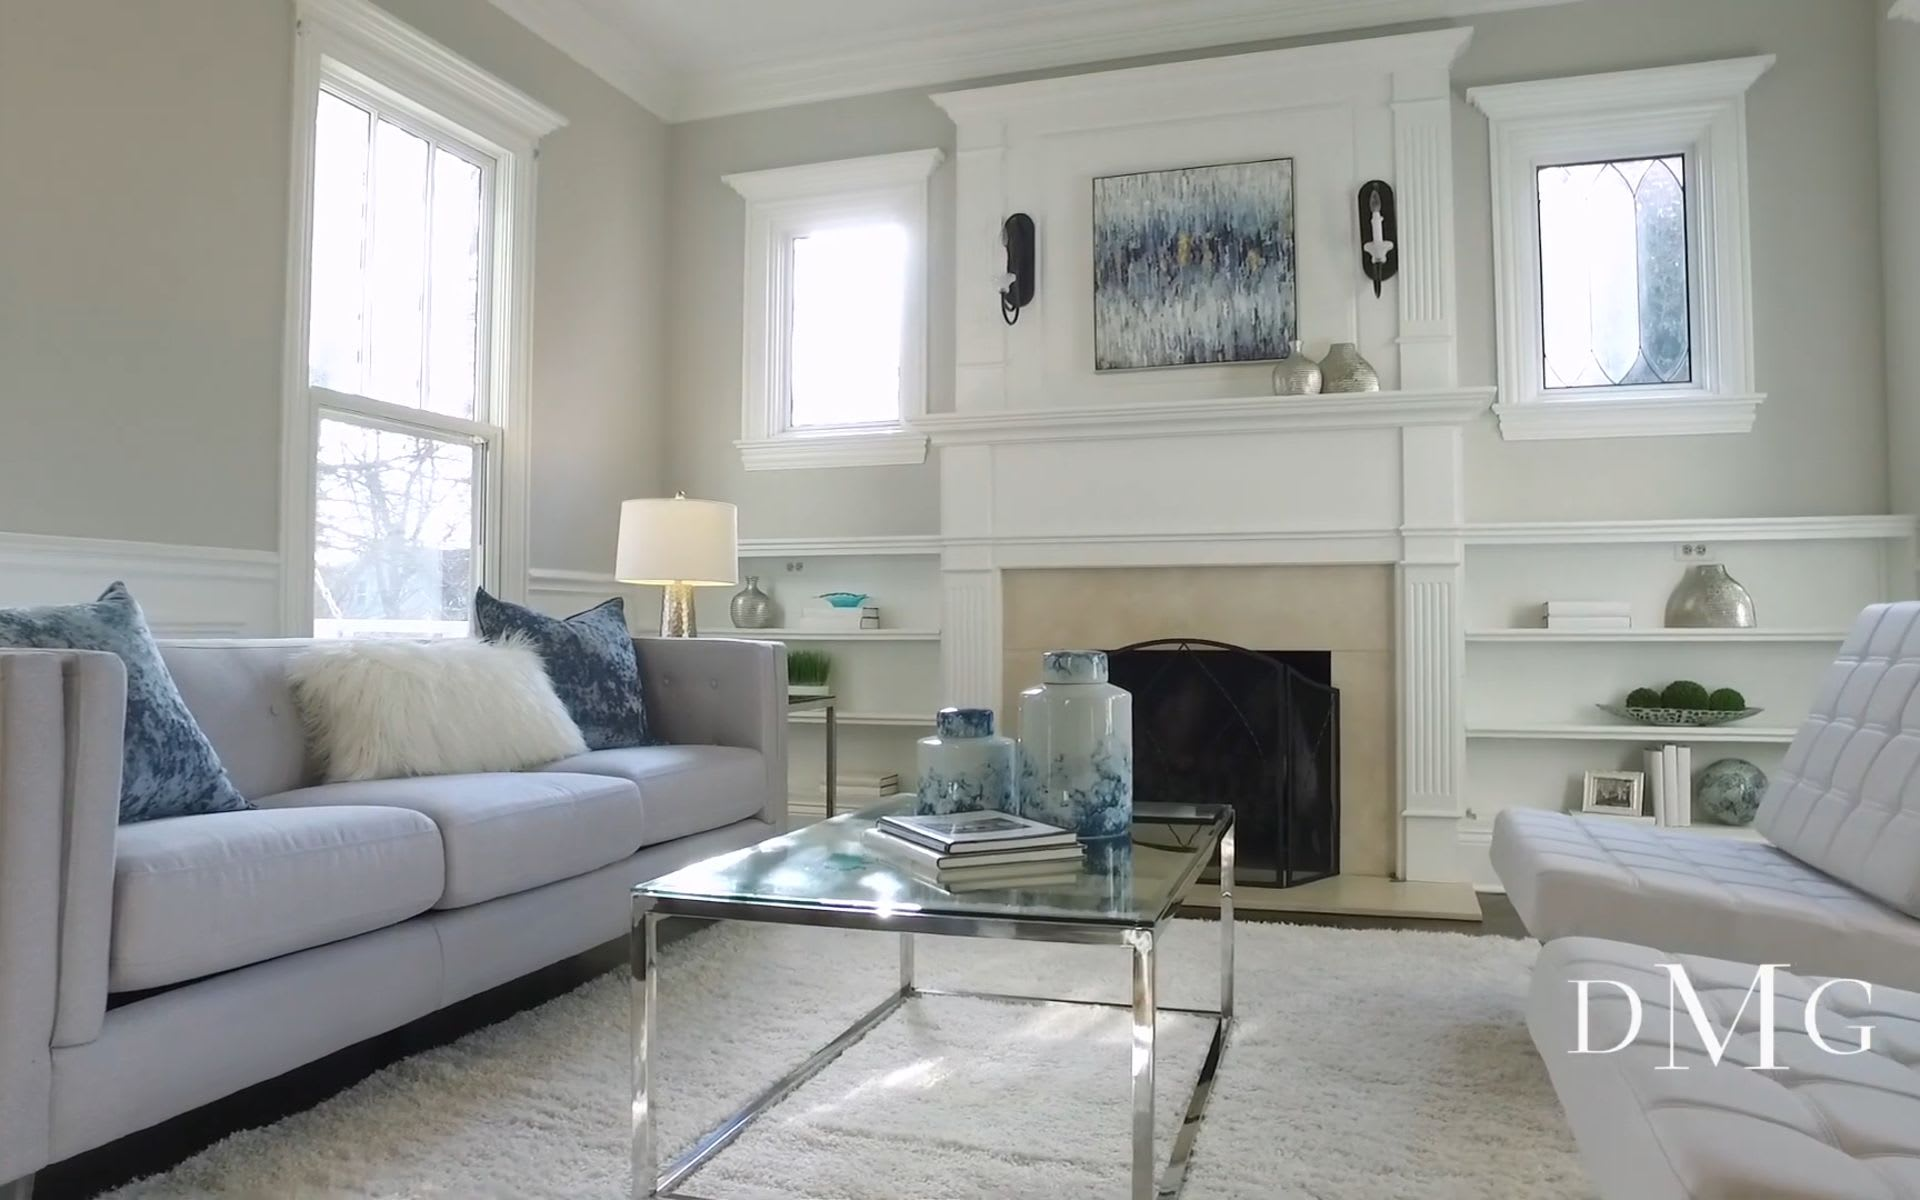 24 SOUTH MONROE, HINSDALE, IL DAWN MCKENNA GROUP video preview